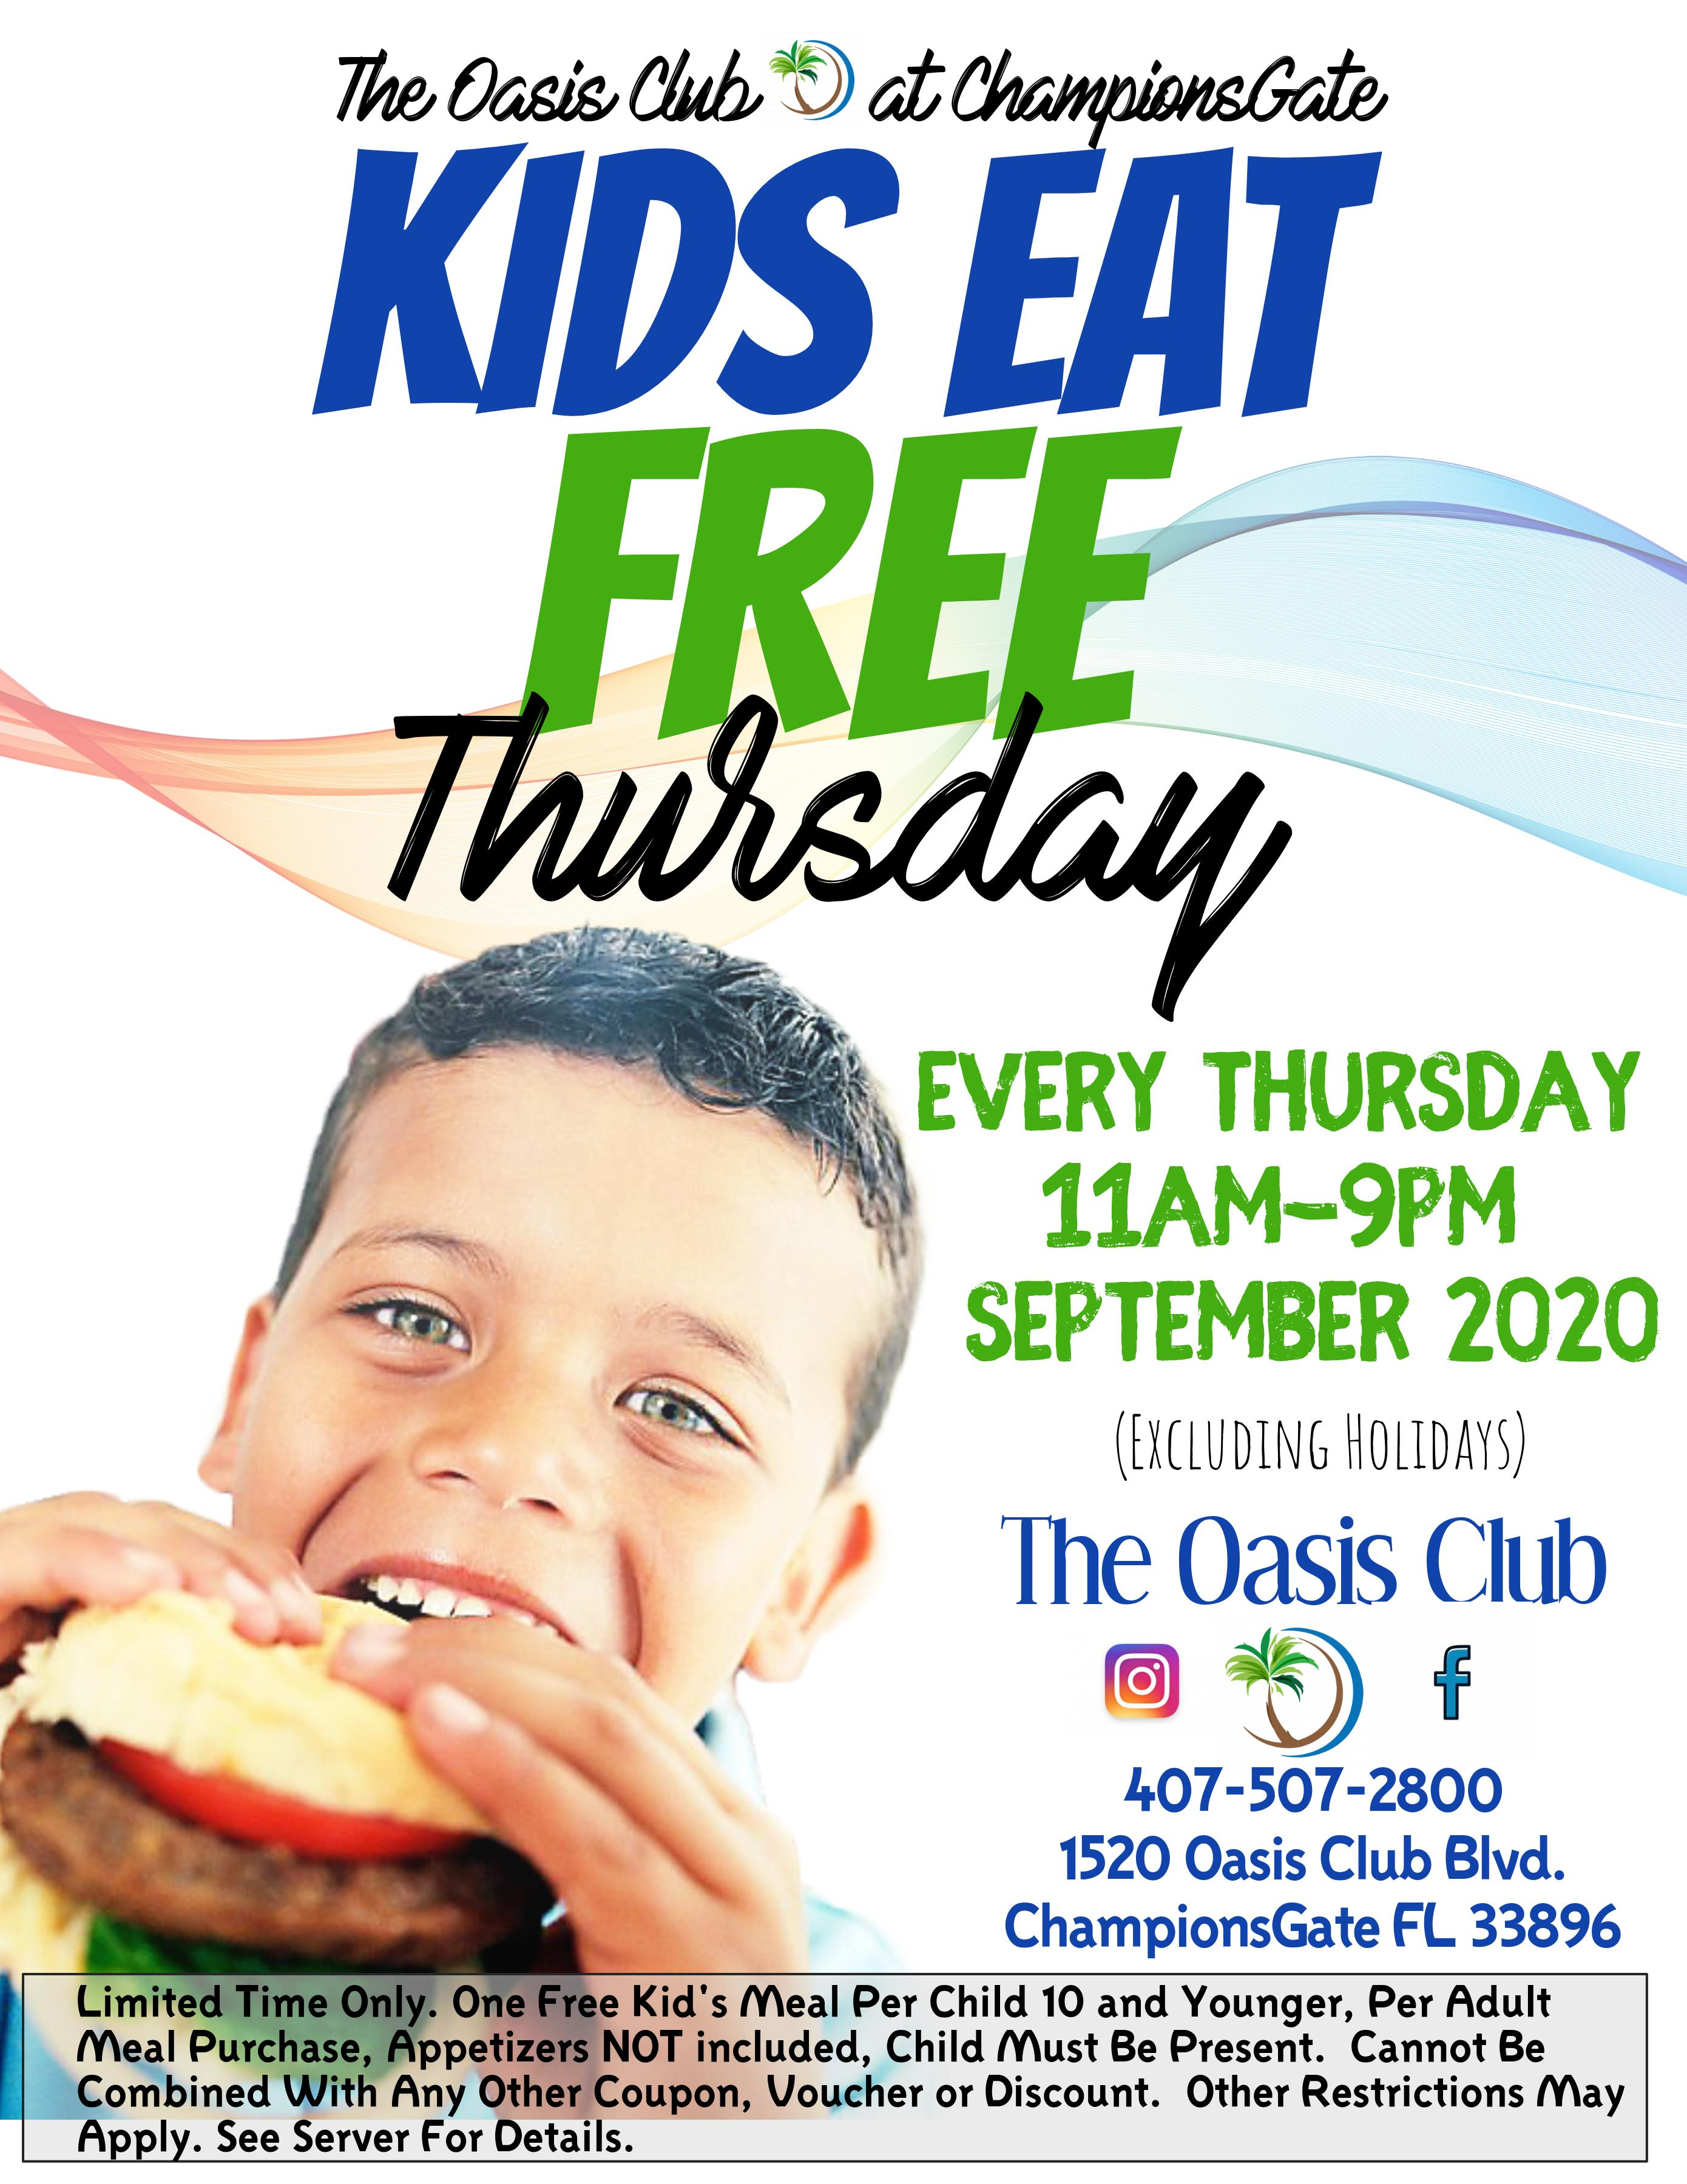 Kids Eat Free Thursday Nights 1520 Oasis Club Blvd, Championsgate FL, 33896, 407-507-2800